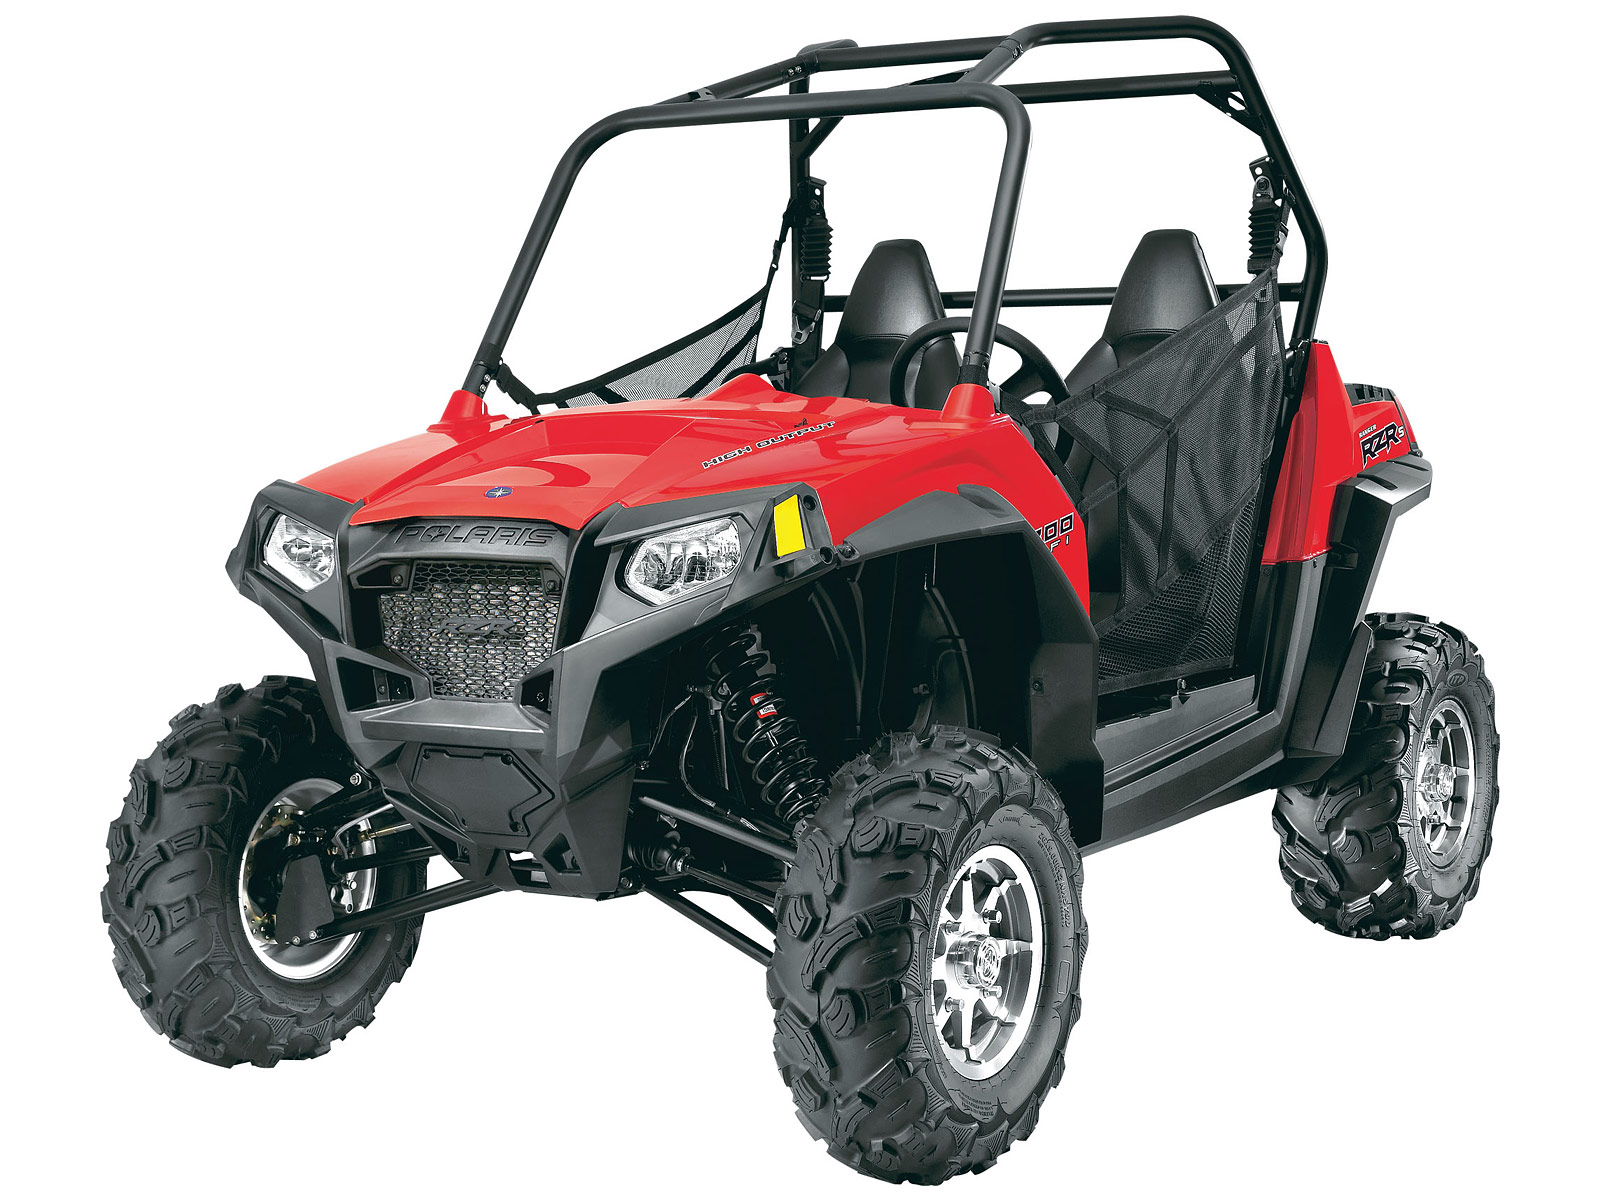 2012 polaris ranger rzr s 800 atv pictures specifications. Black Bedroom Furniture Sets. Home Design Ideas